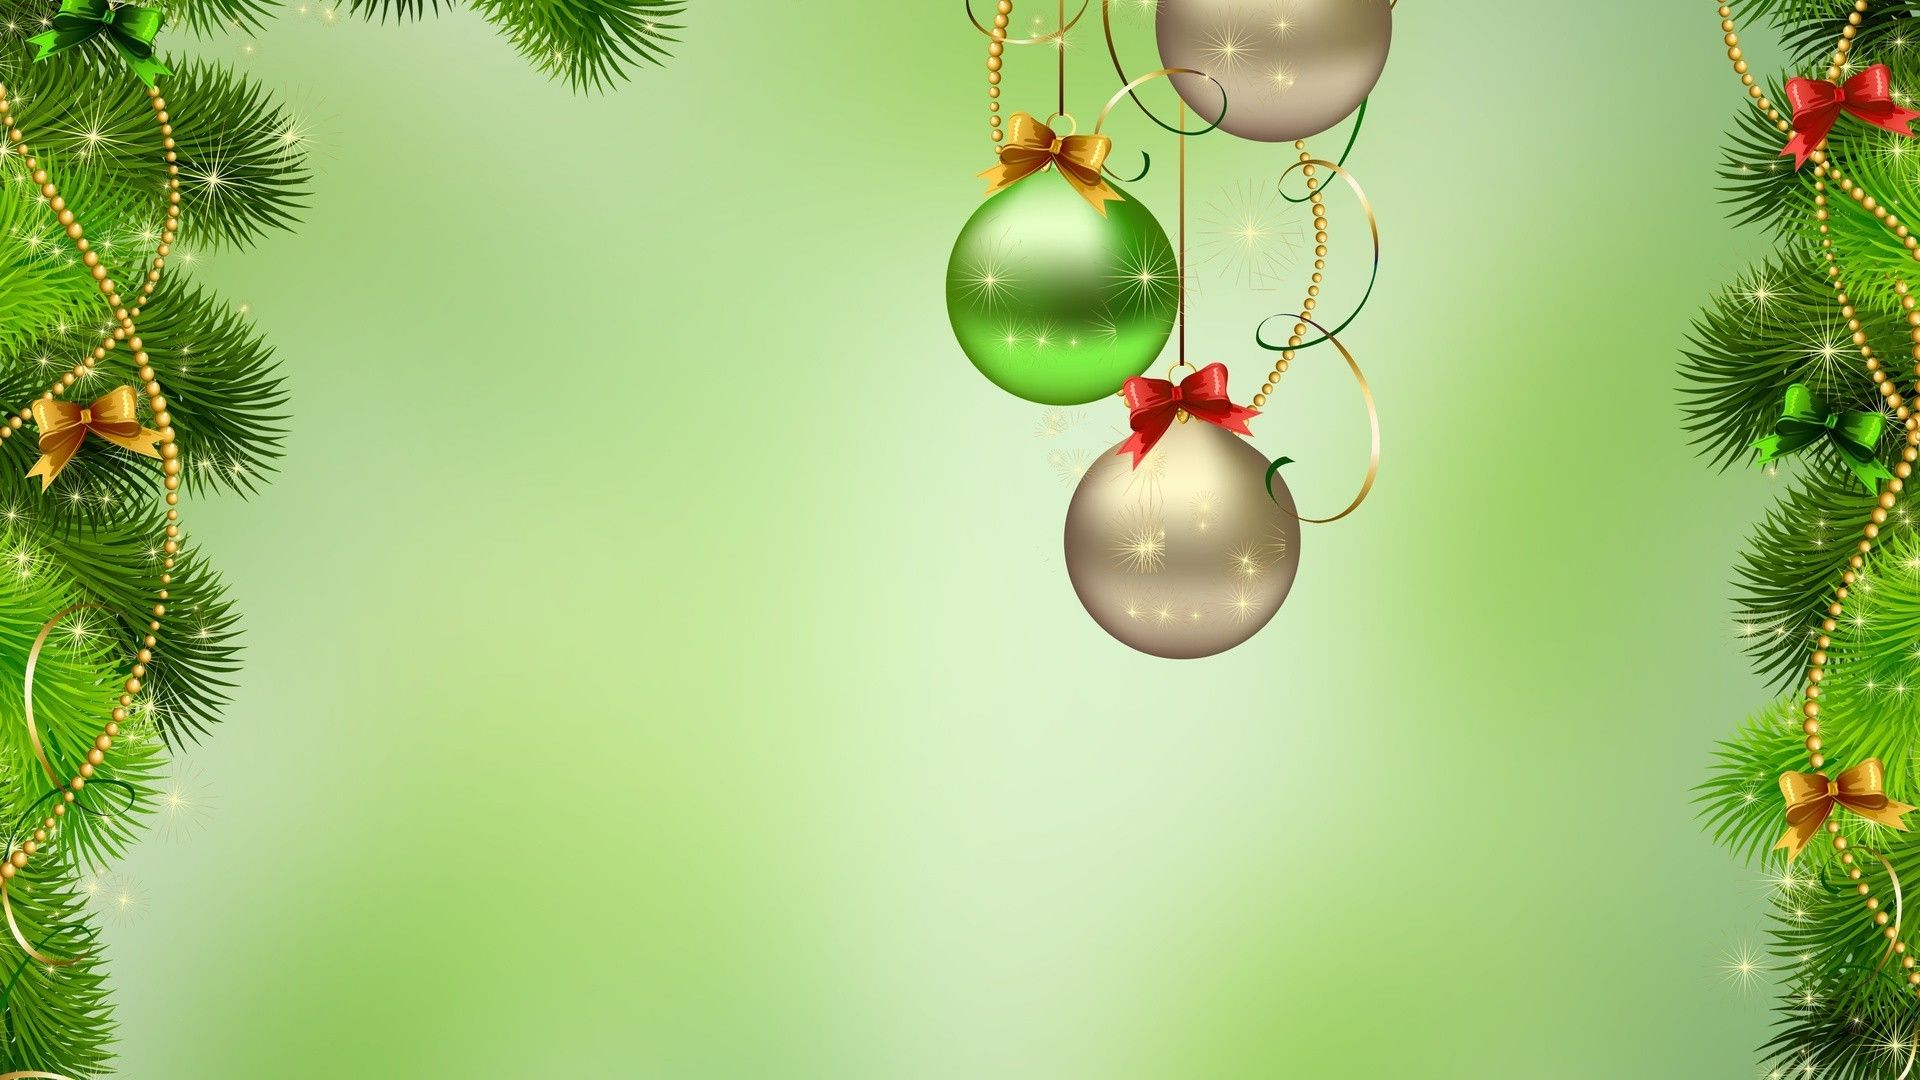 Green Christmas background wallpaper